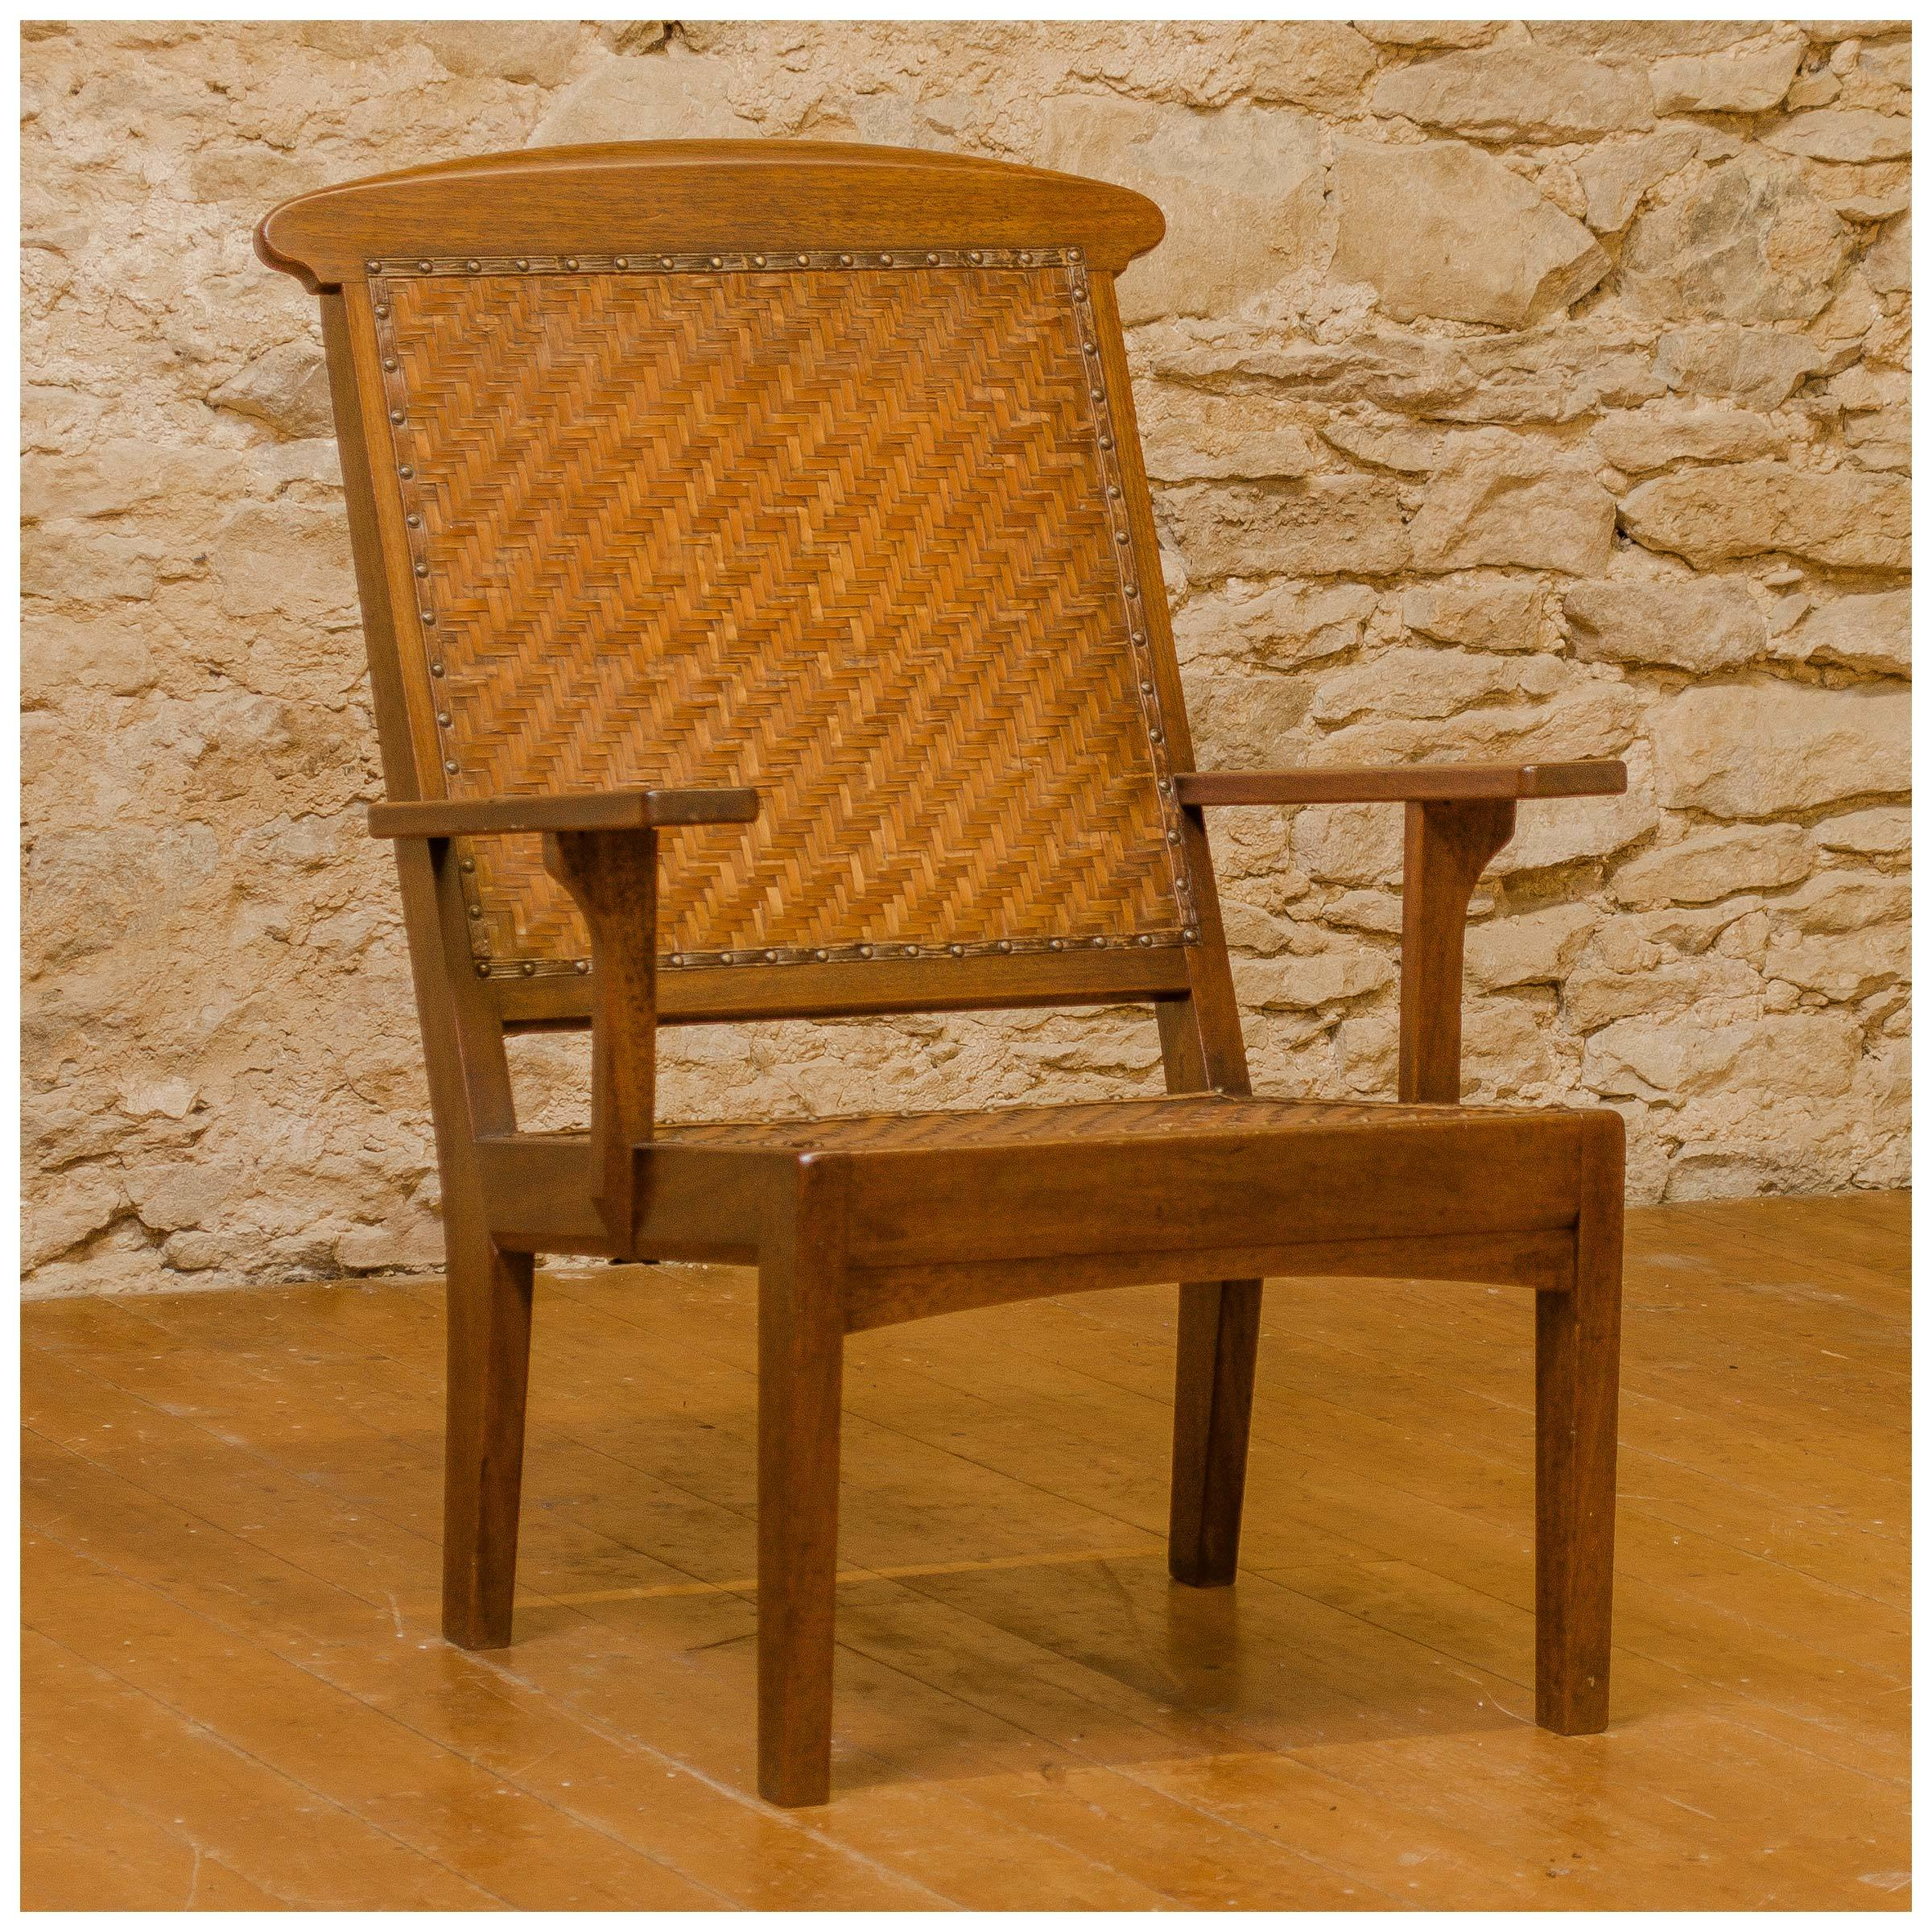 arts-crafts-mahogany-armchair-by-arthur-w-simpson-the-handicrafts-kendal-b0020151i.jpg